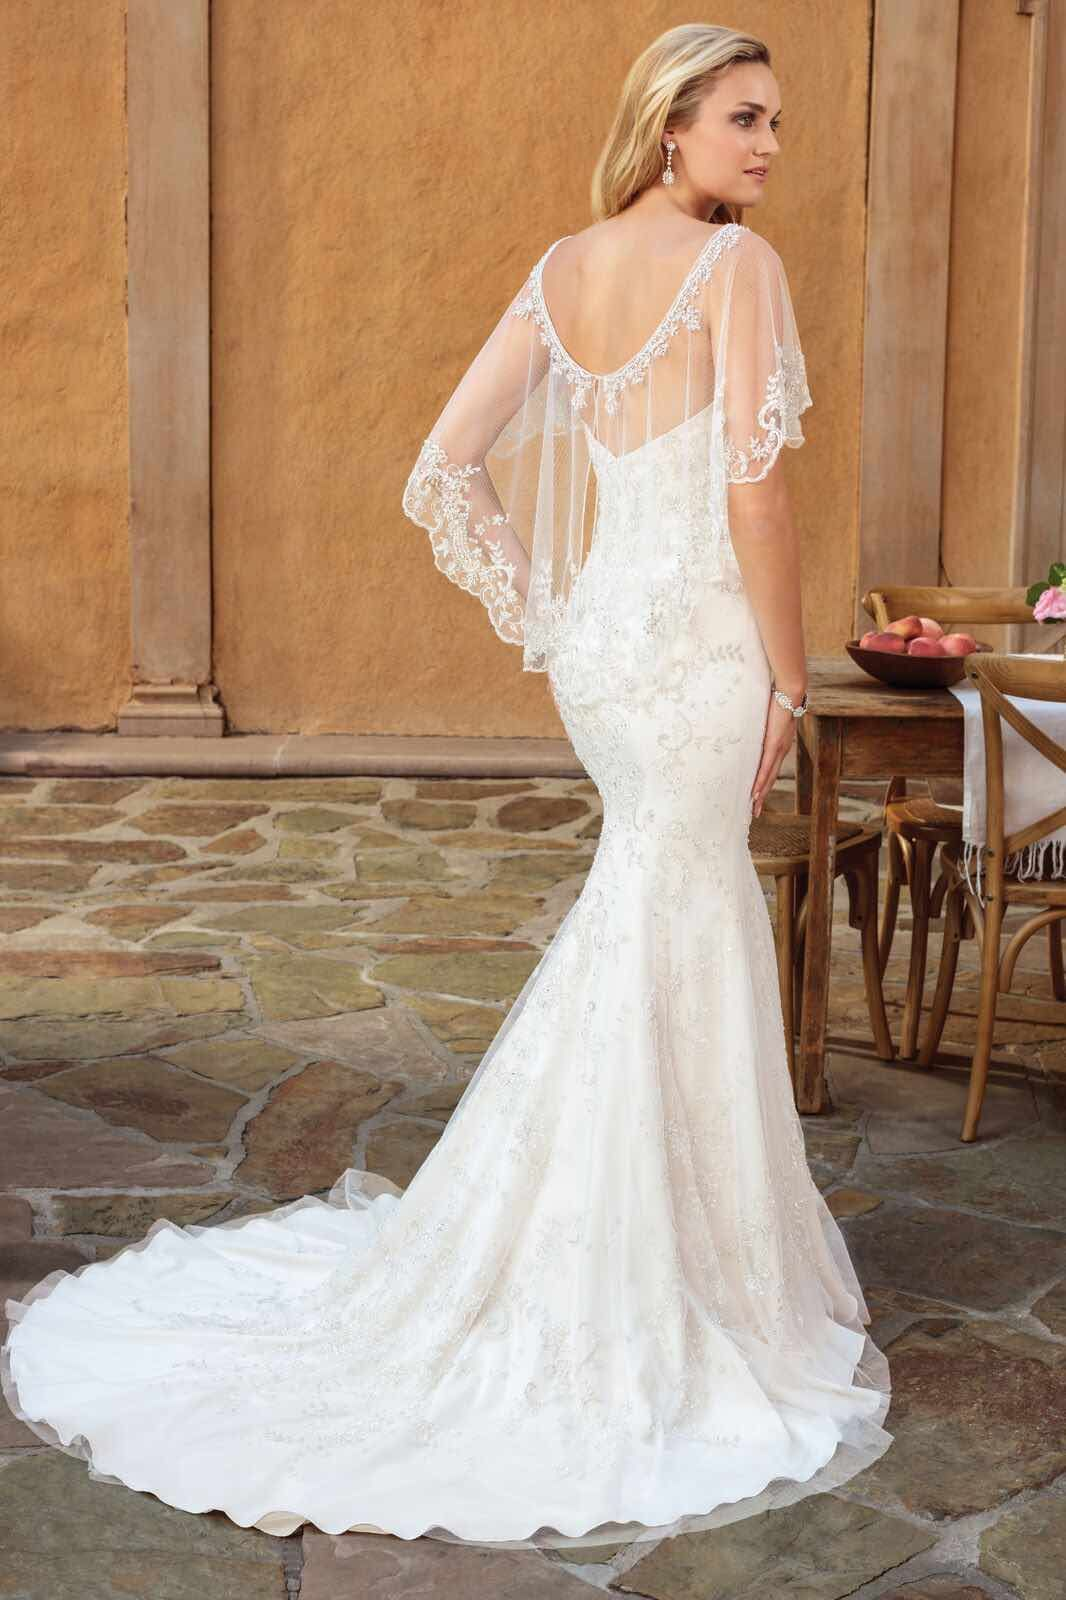 d549ebc25f1 Elegant And Sophisticated Wedding Dresses - Aztec Stone and Reclamations